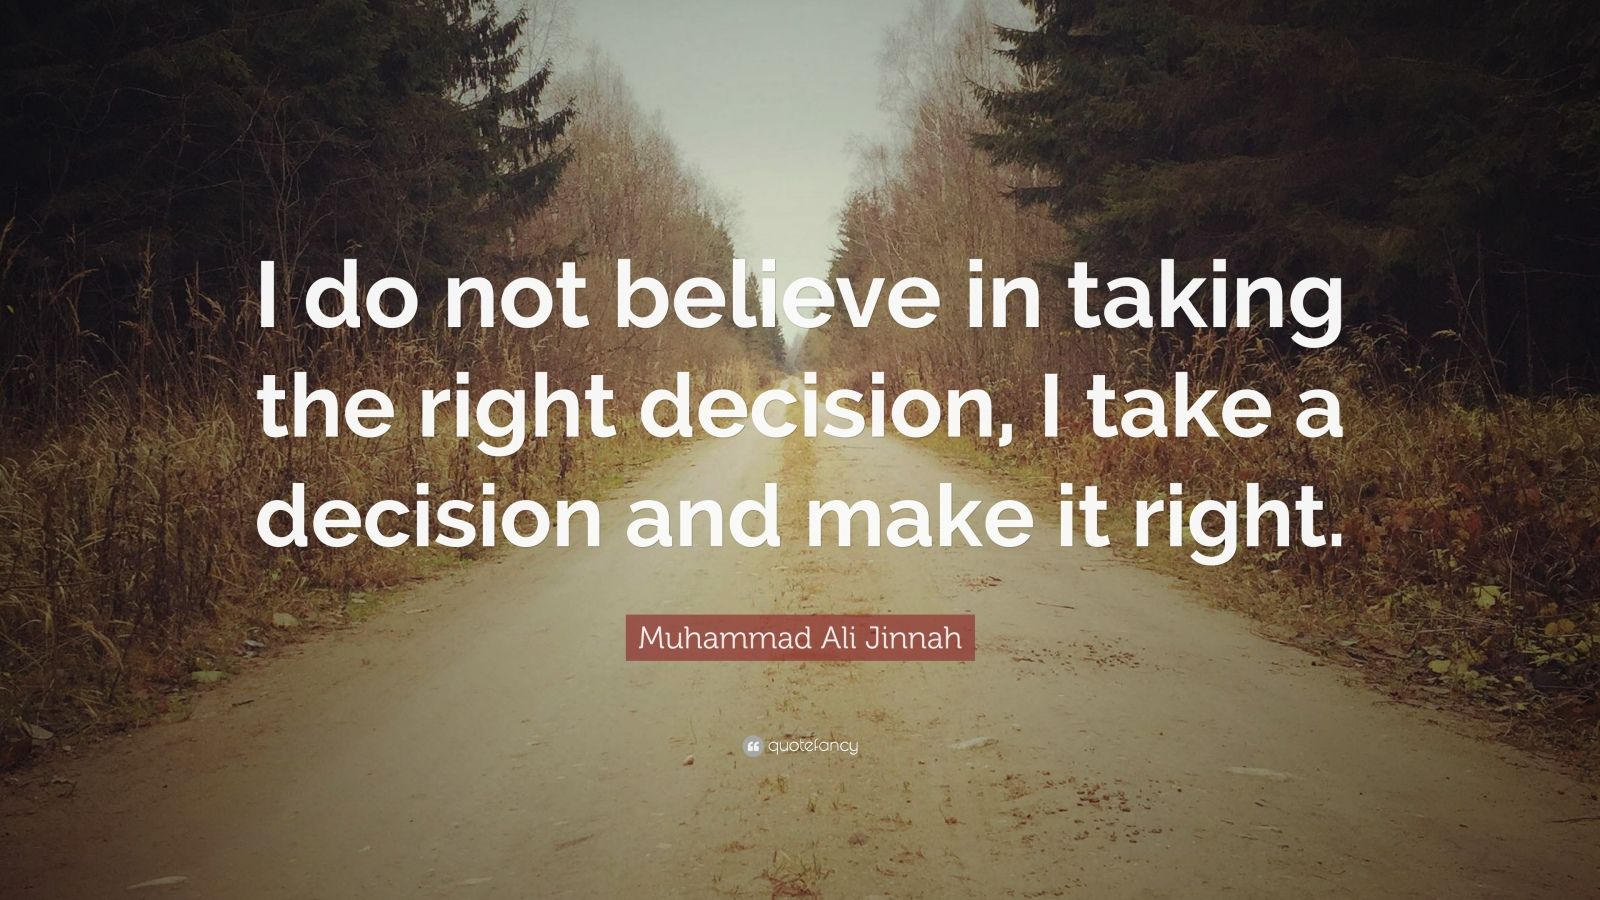 Did I Make The Right Decision Quotes: Muhammad Ali Jinnah Quotes (10 Wallpapers)